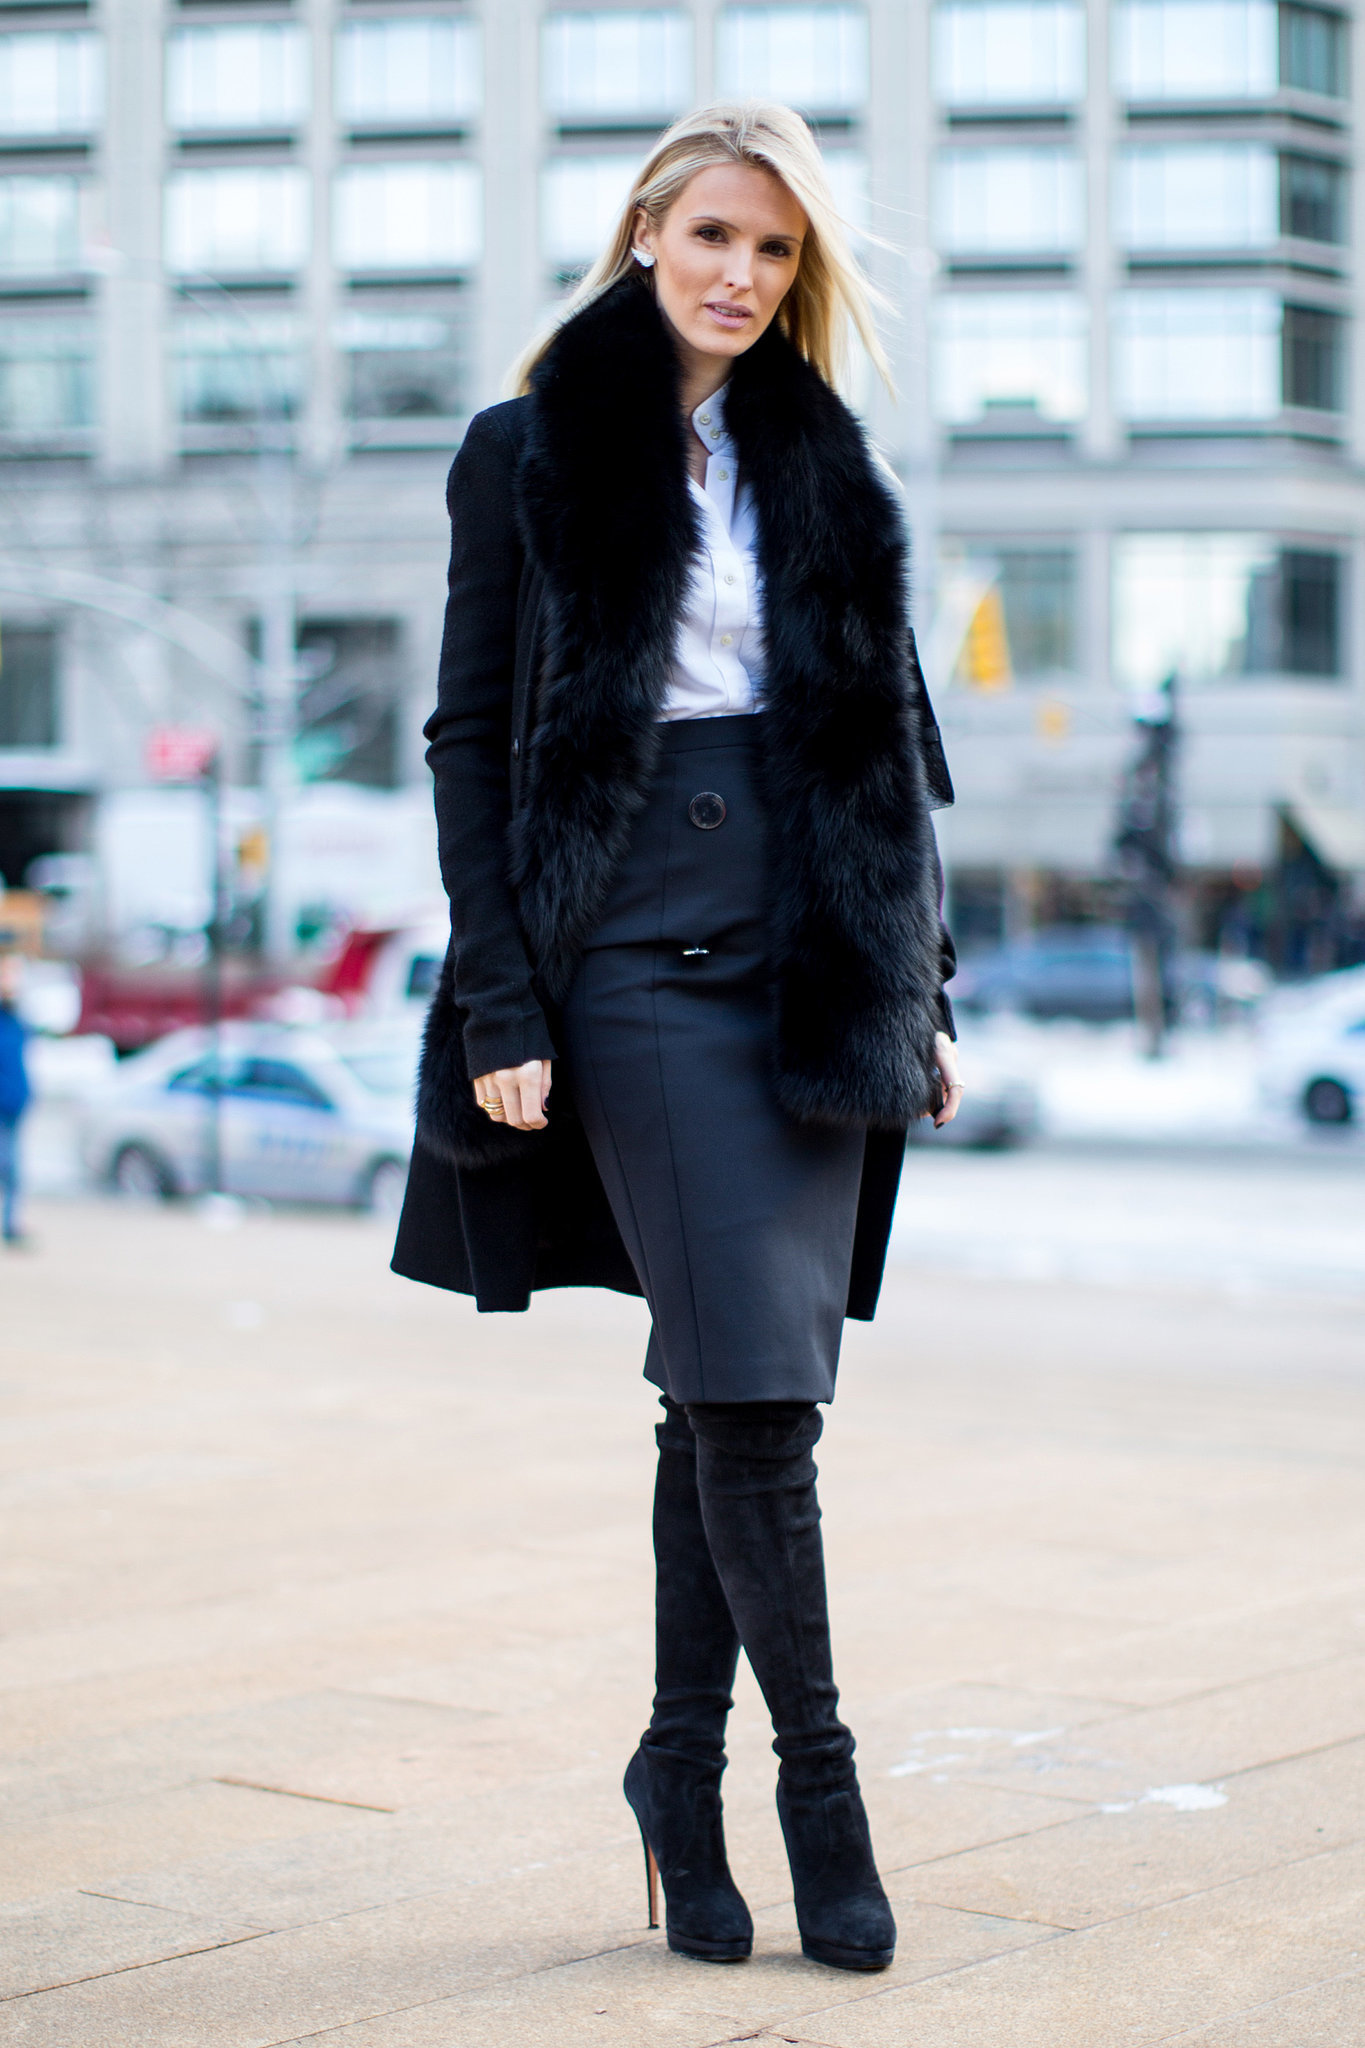 nyfw street style day 1 flashback friday nyfw street style stars trekked through the snow for. Black Bedroom Furniture Sets. Home Design Ideas